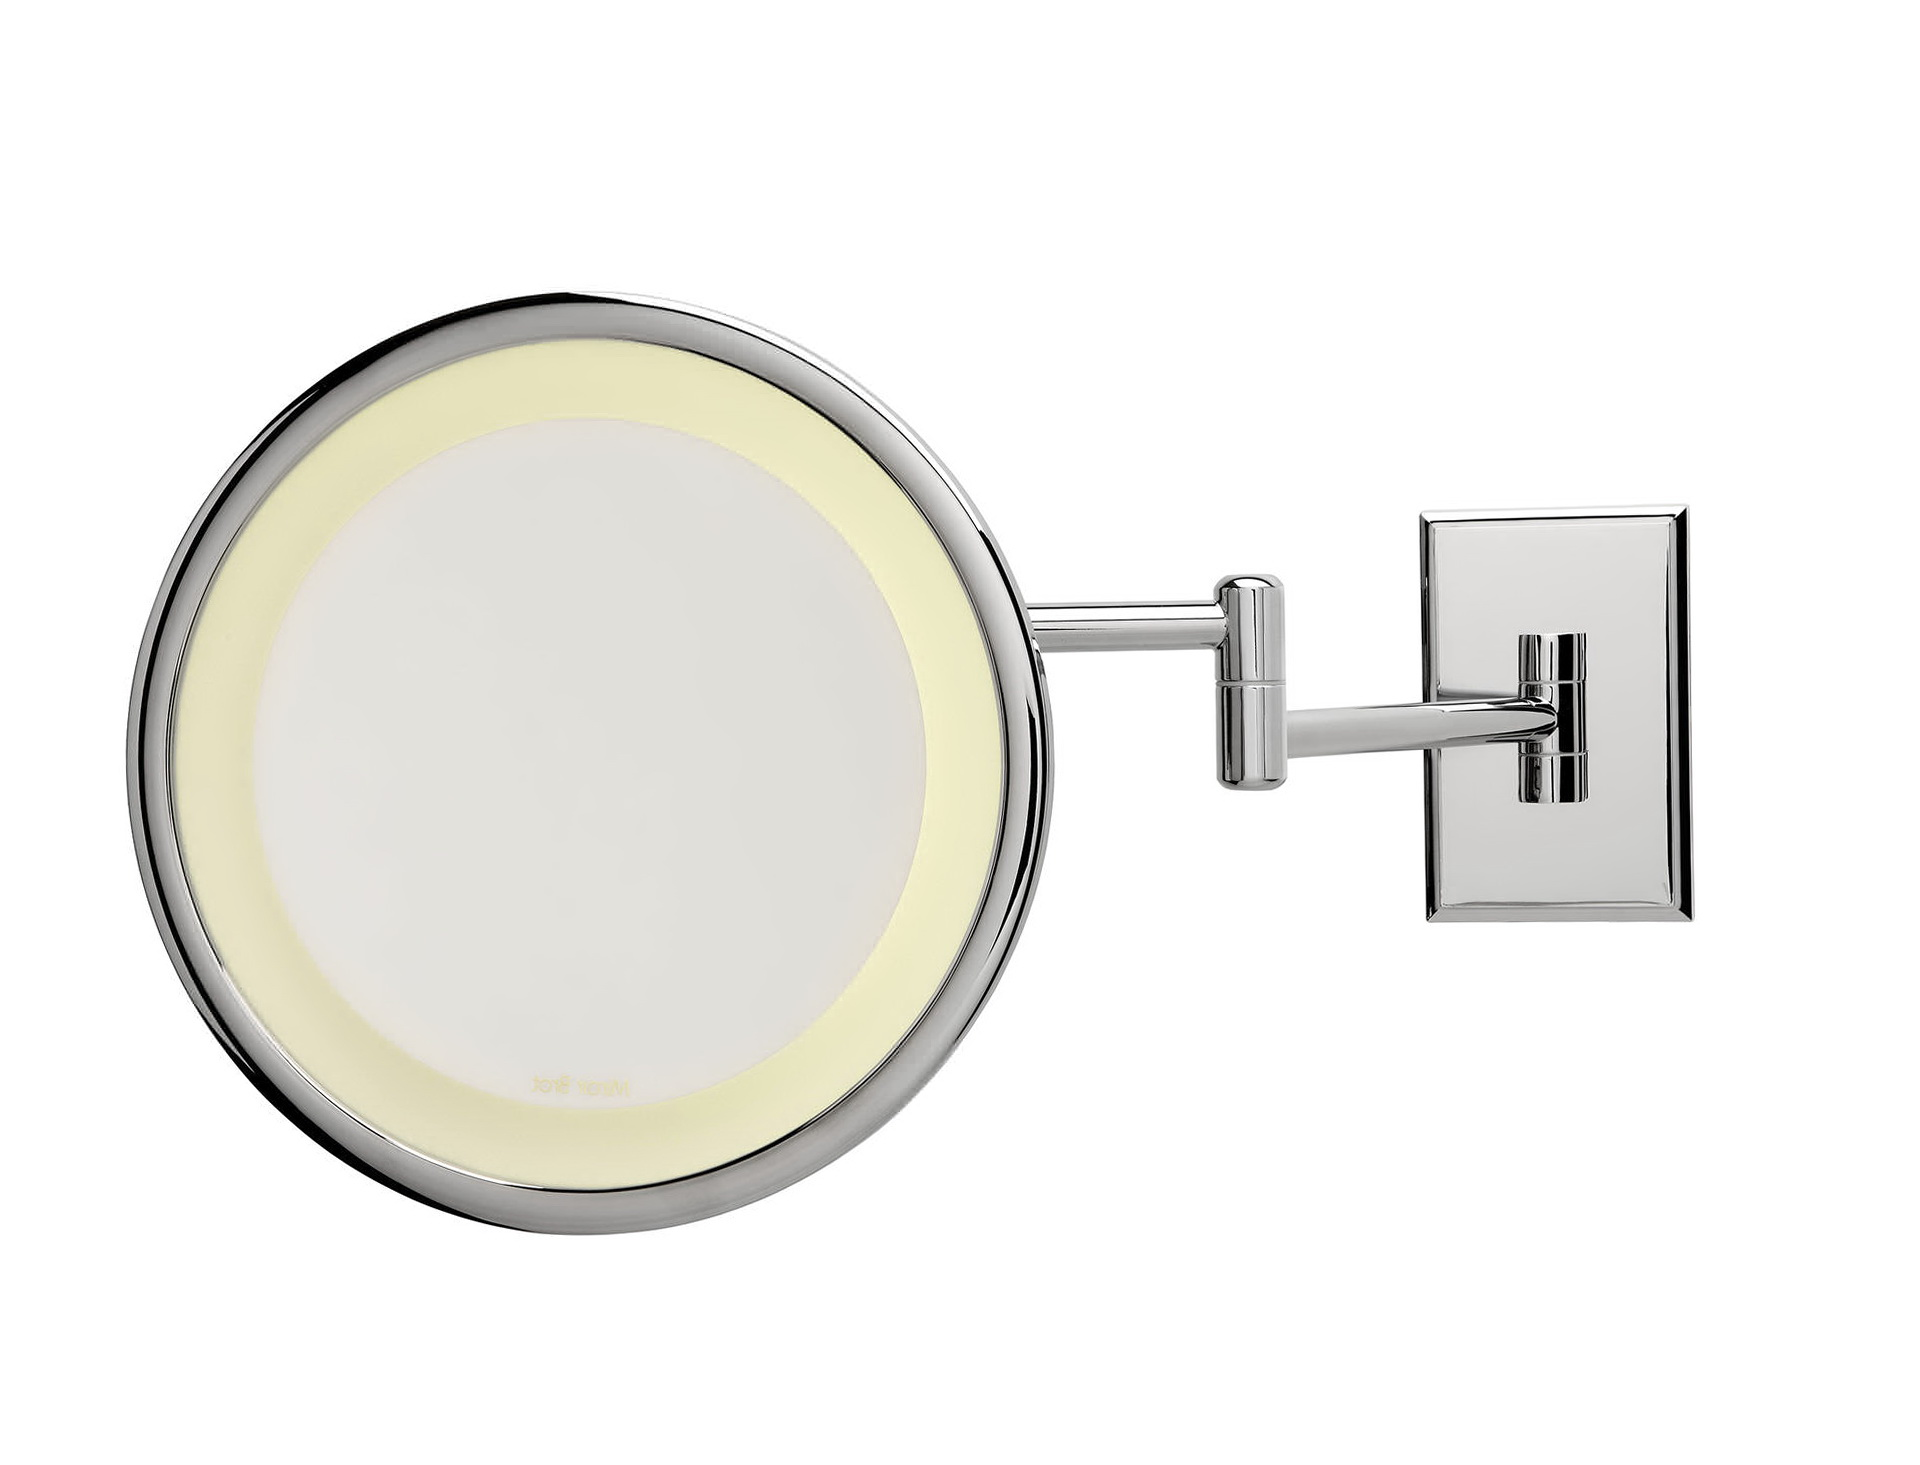 Magnifying bathroom mirror with light